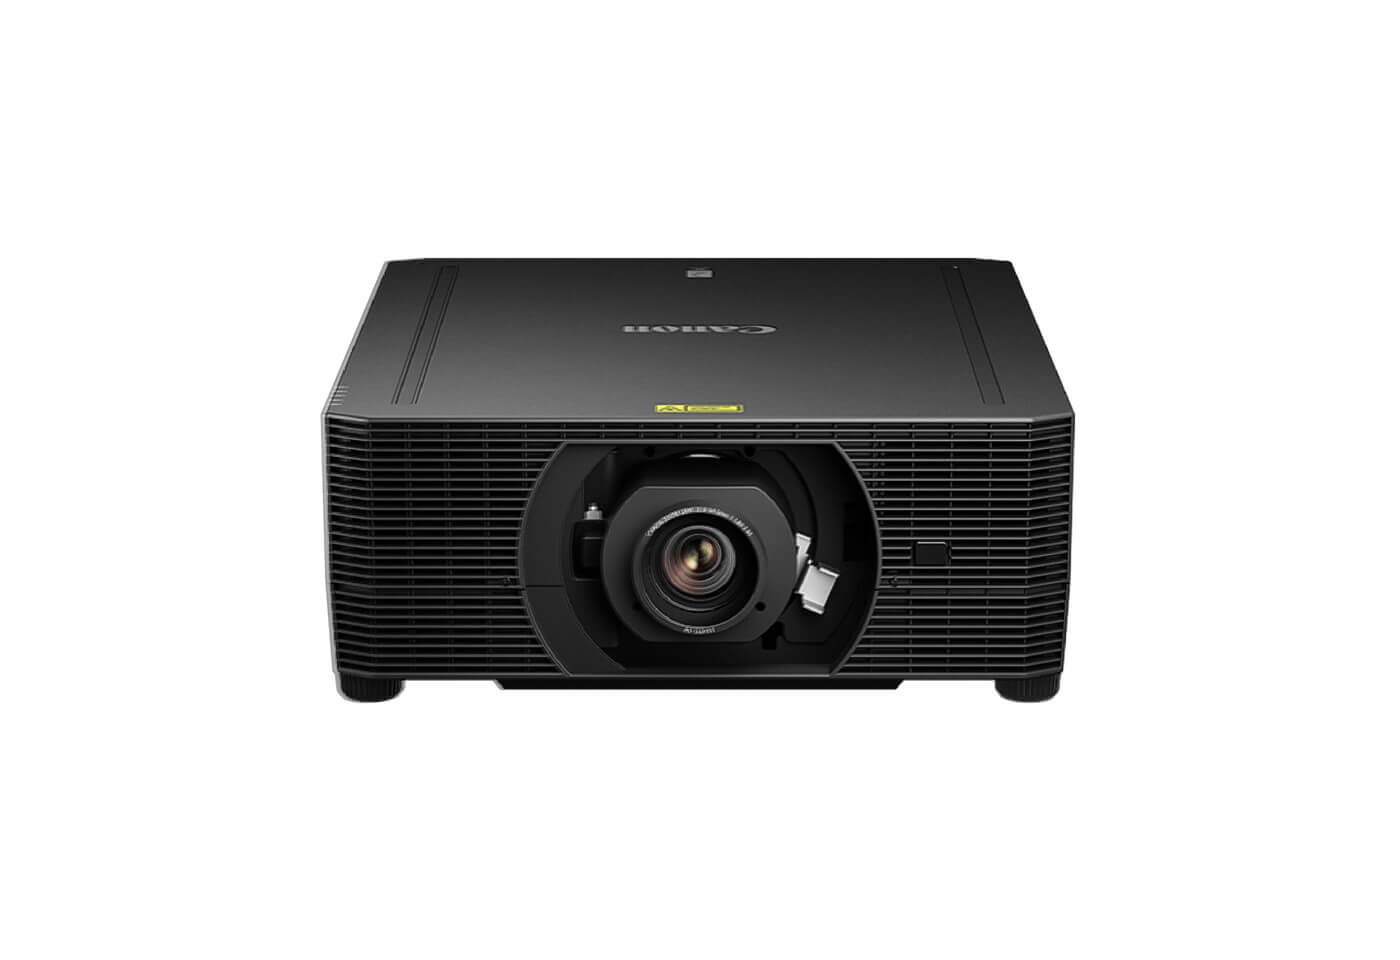 Product image of XEED 4K6021Z projector